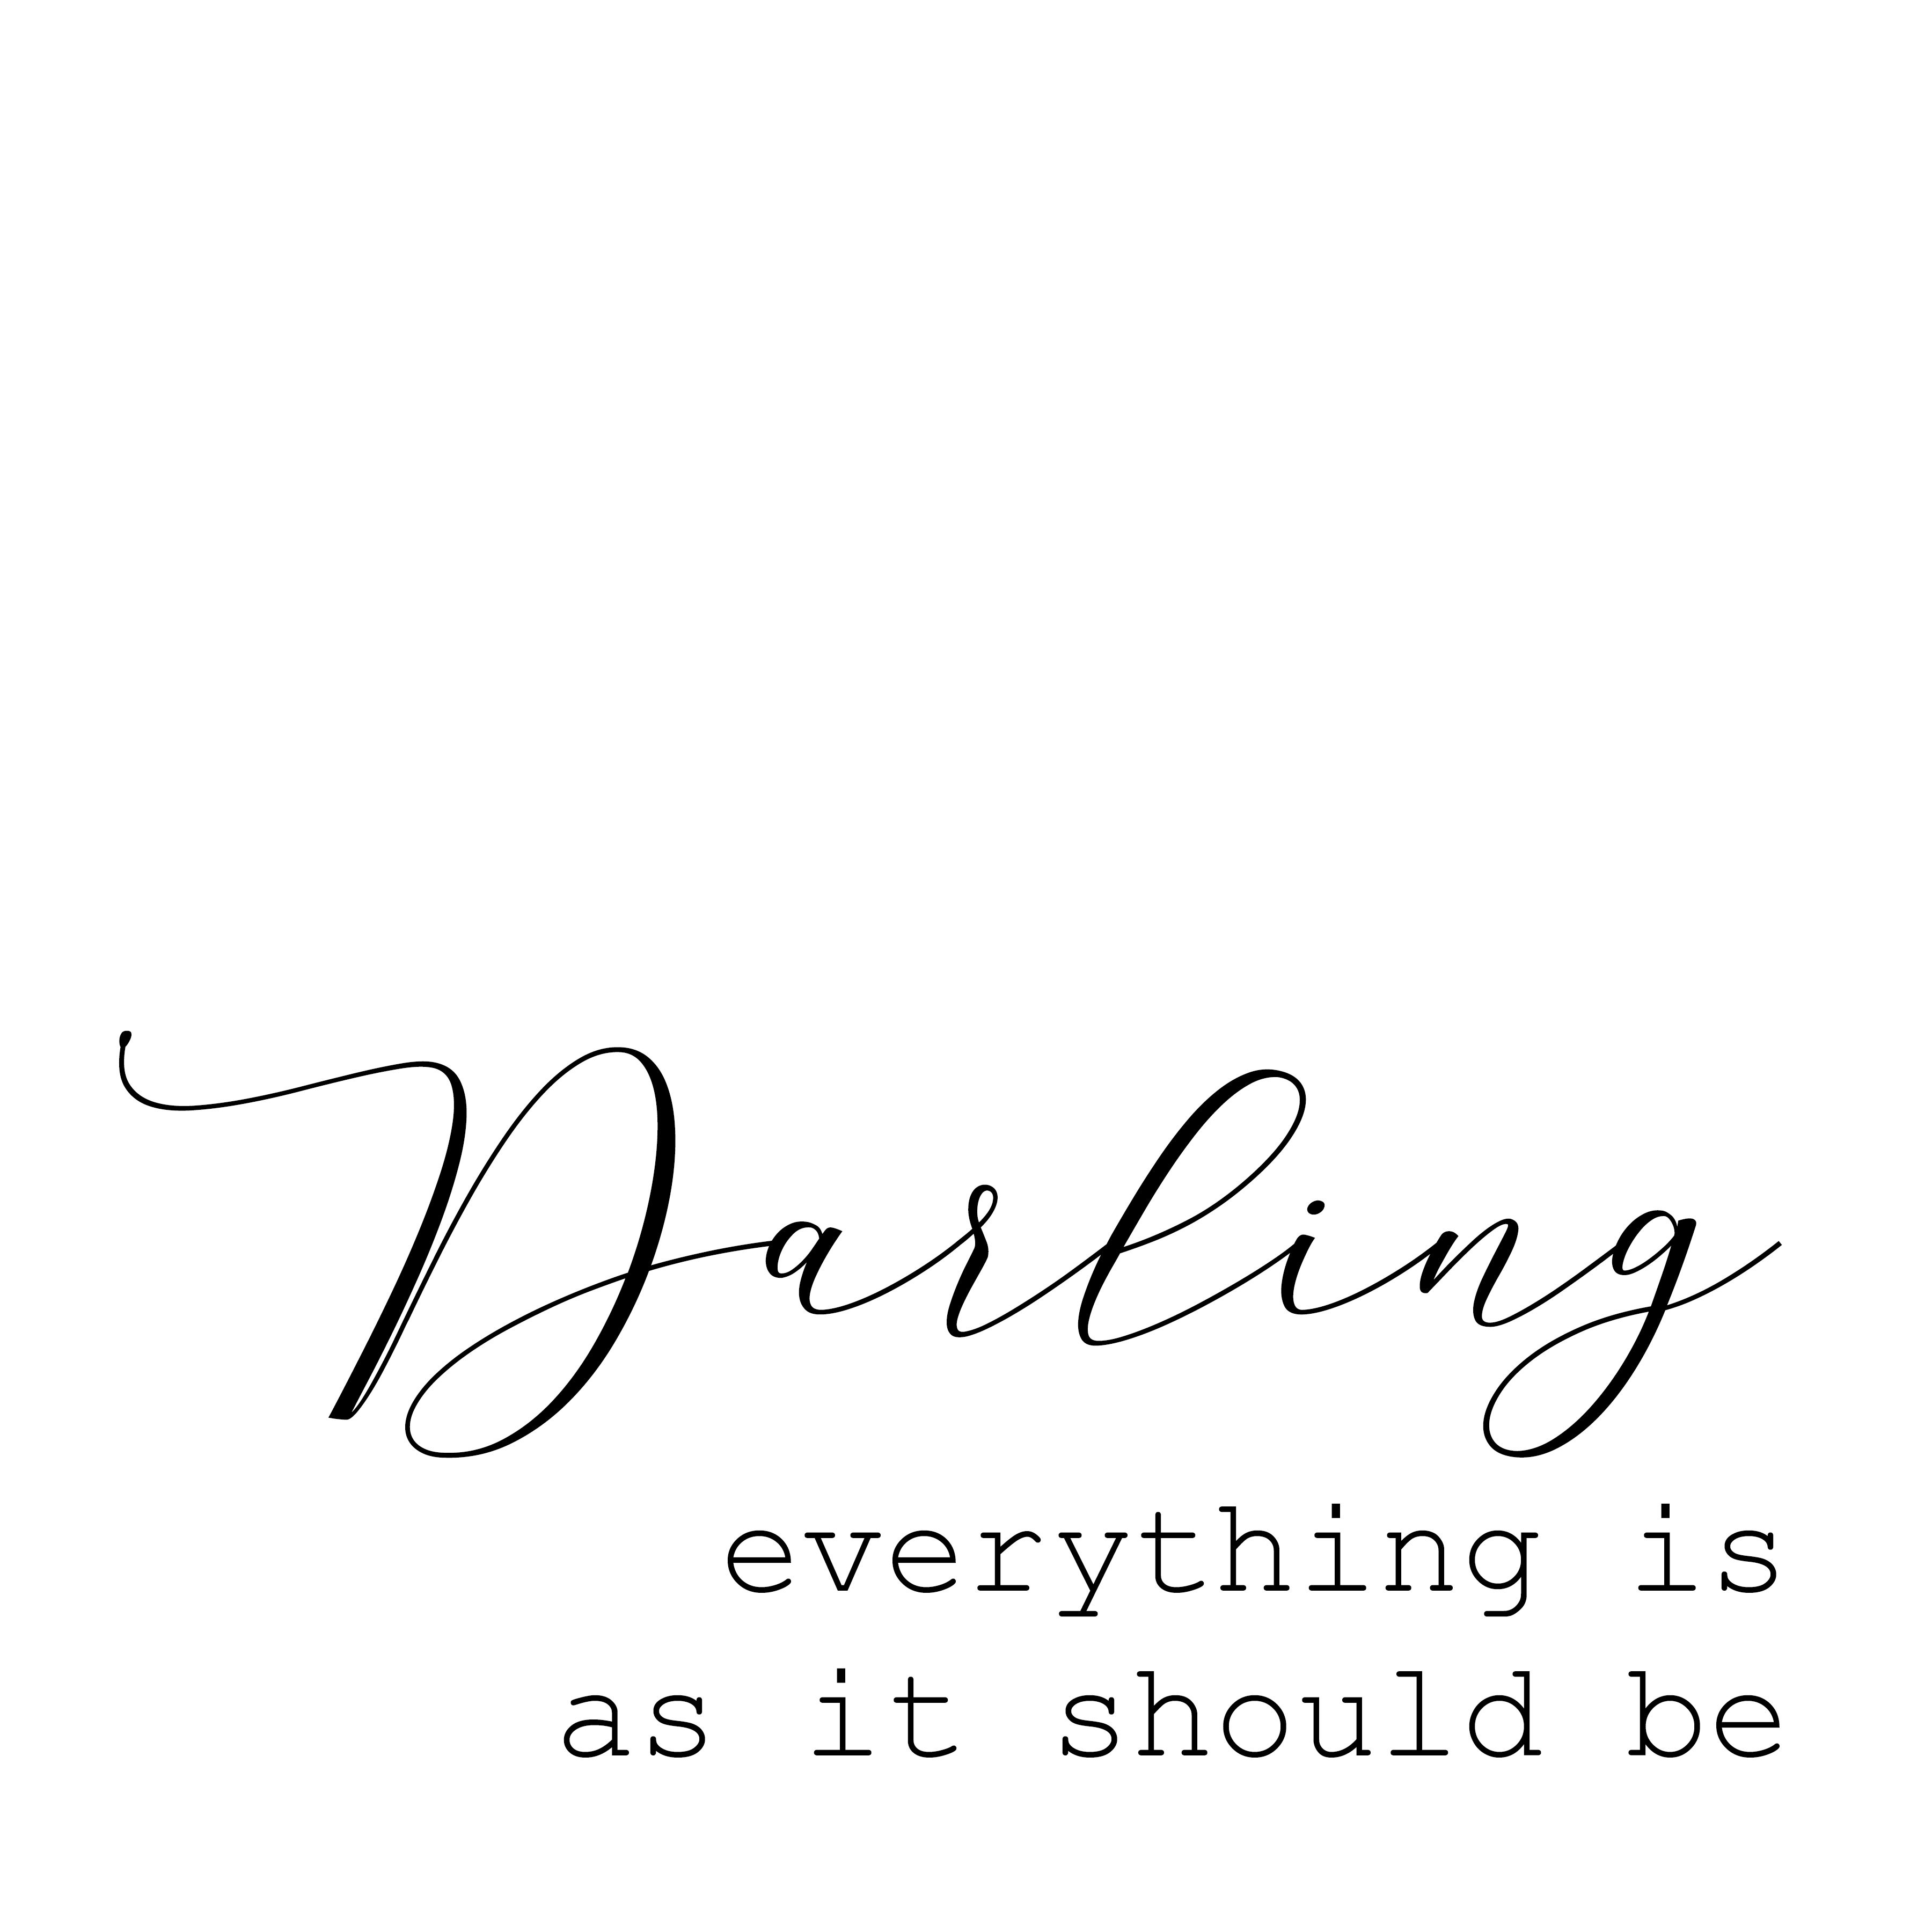 Darling Everything Is As It Should Be Cute Quotes Life Quotes Words Of Wisdom